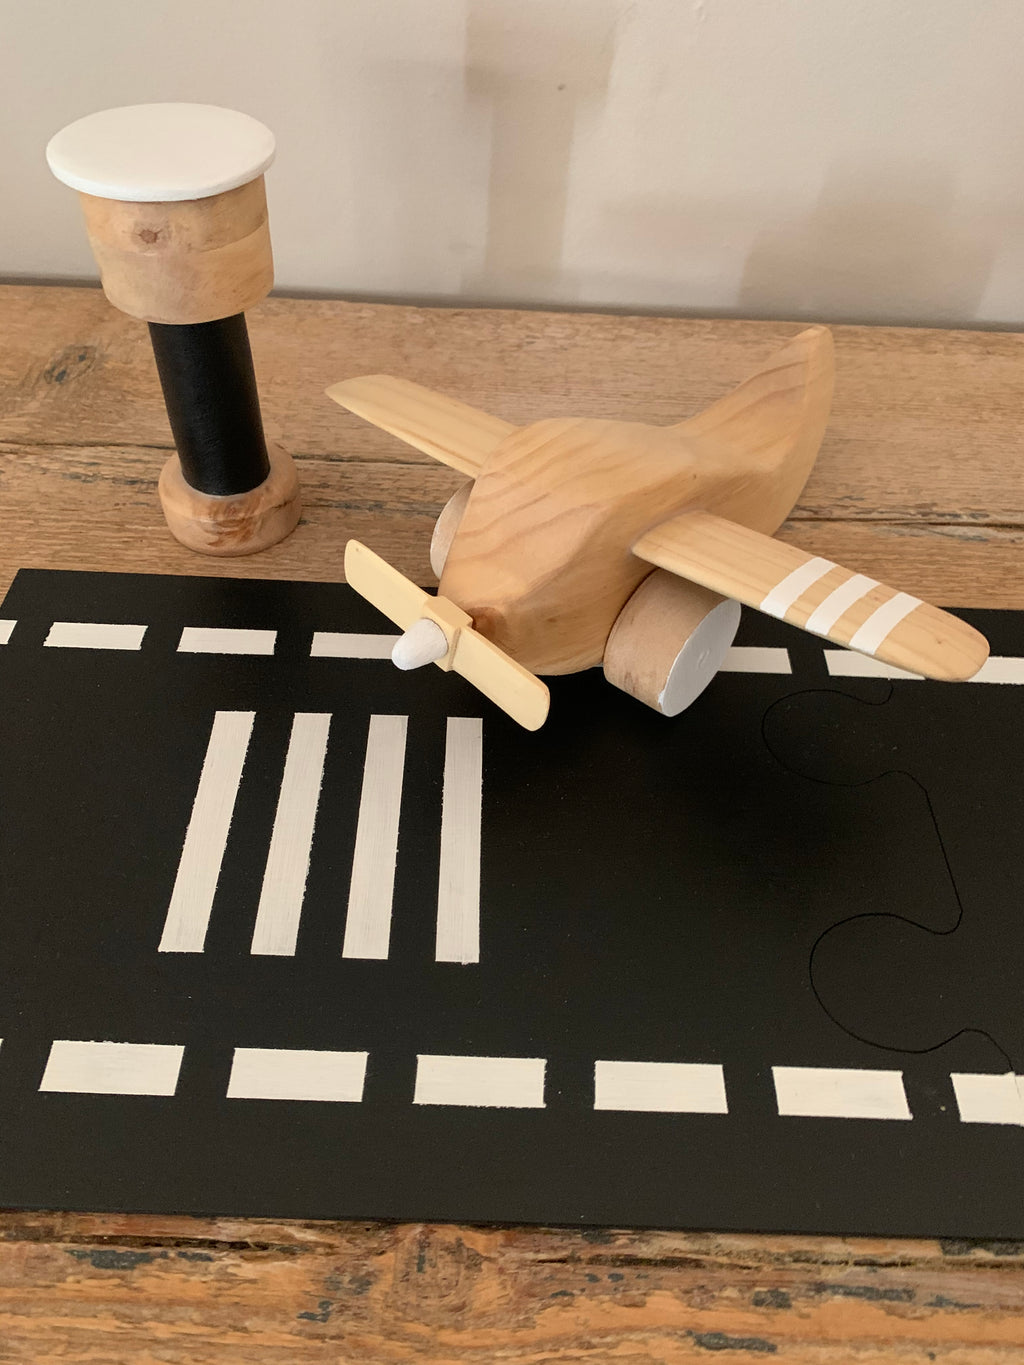 Wooden airport set